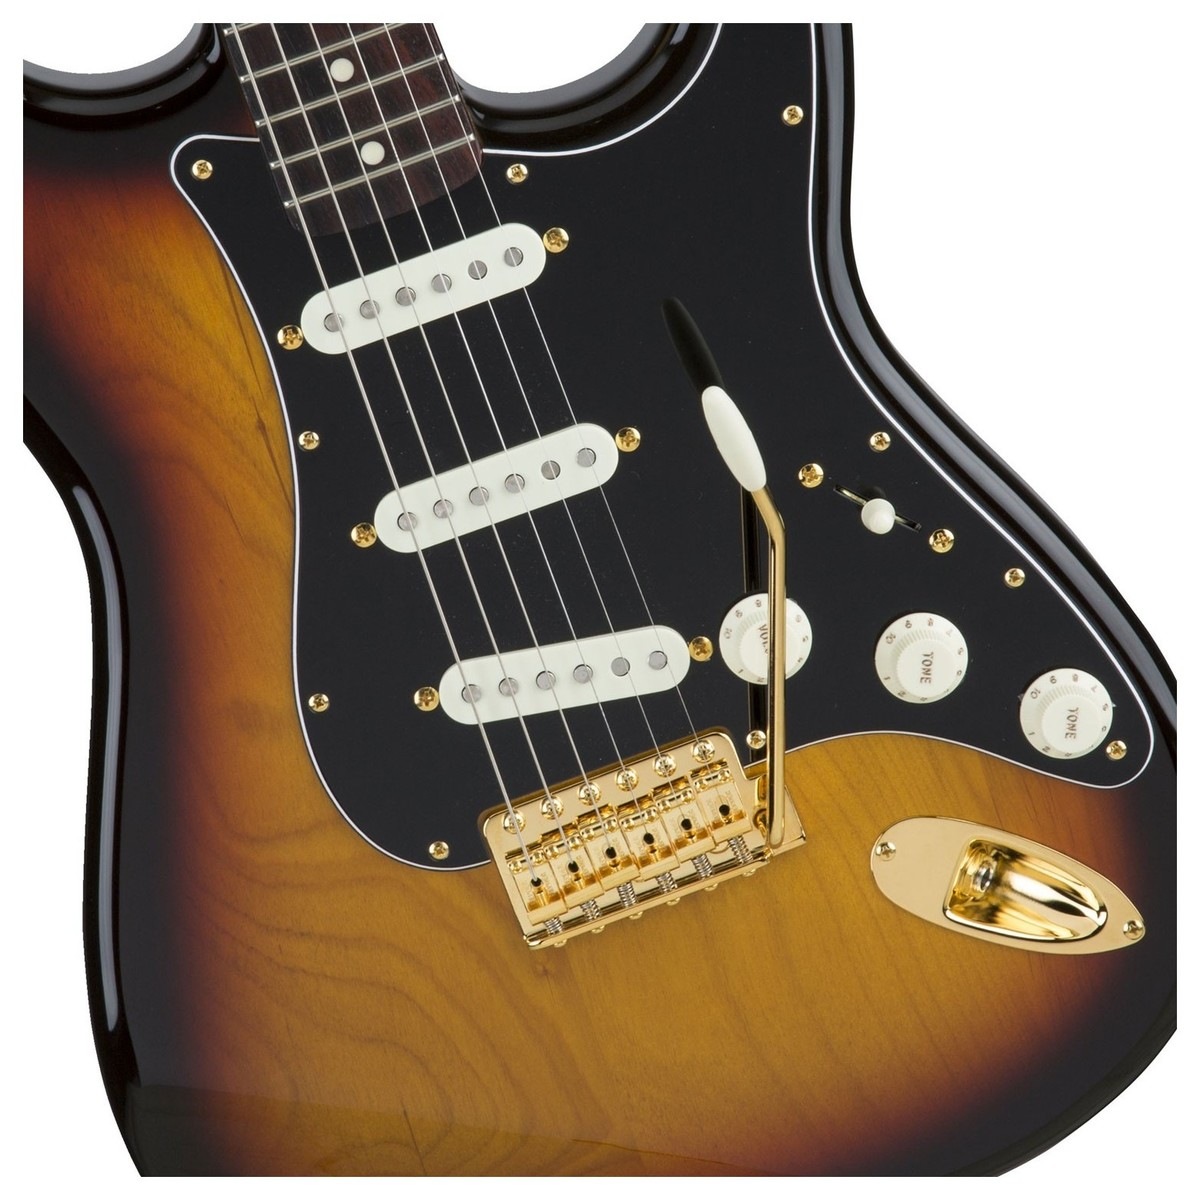 60s Strat Wiring Trusted Schematics Diagram Squier 60 Fender Fsr Mij Traditional Rw 3 Tone Sunburst At Gear4music Classic Vibe Stratocaster